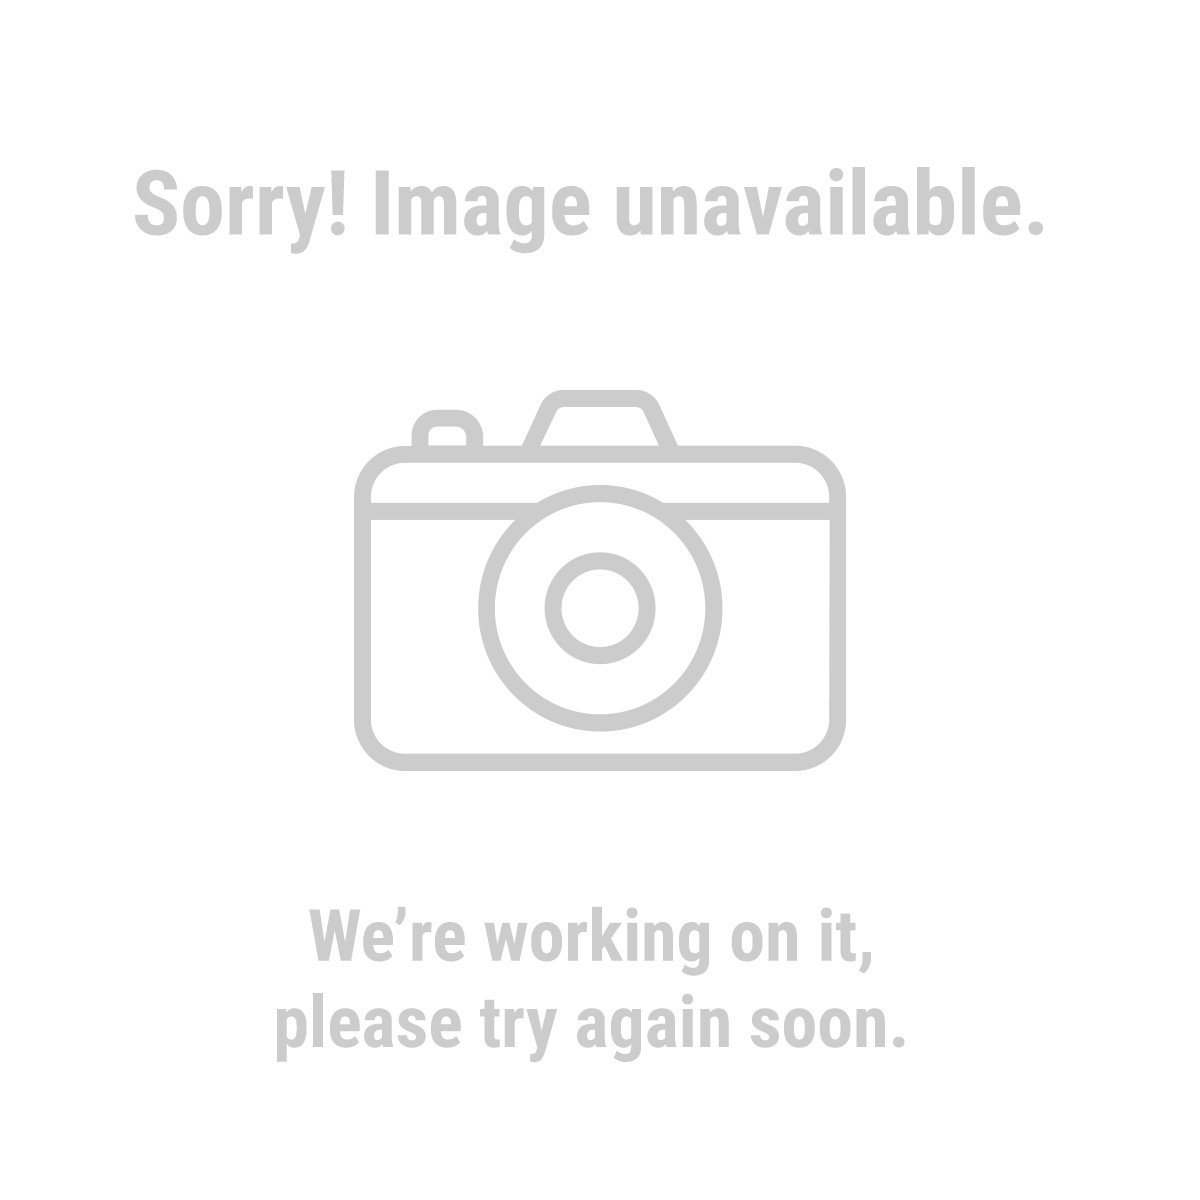 Chicago Electric Power Tools 96923 18 Lb. Vibratory Bowl with Liquid Drain Hose